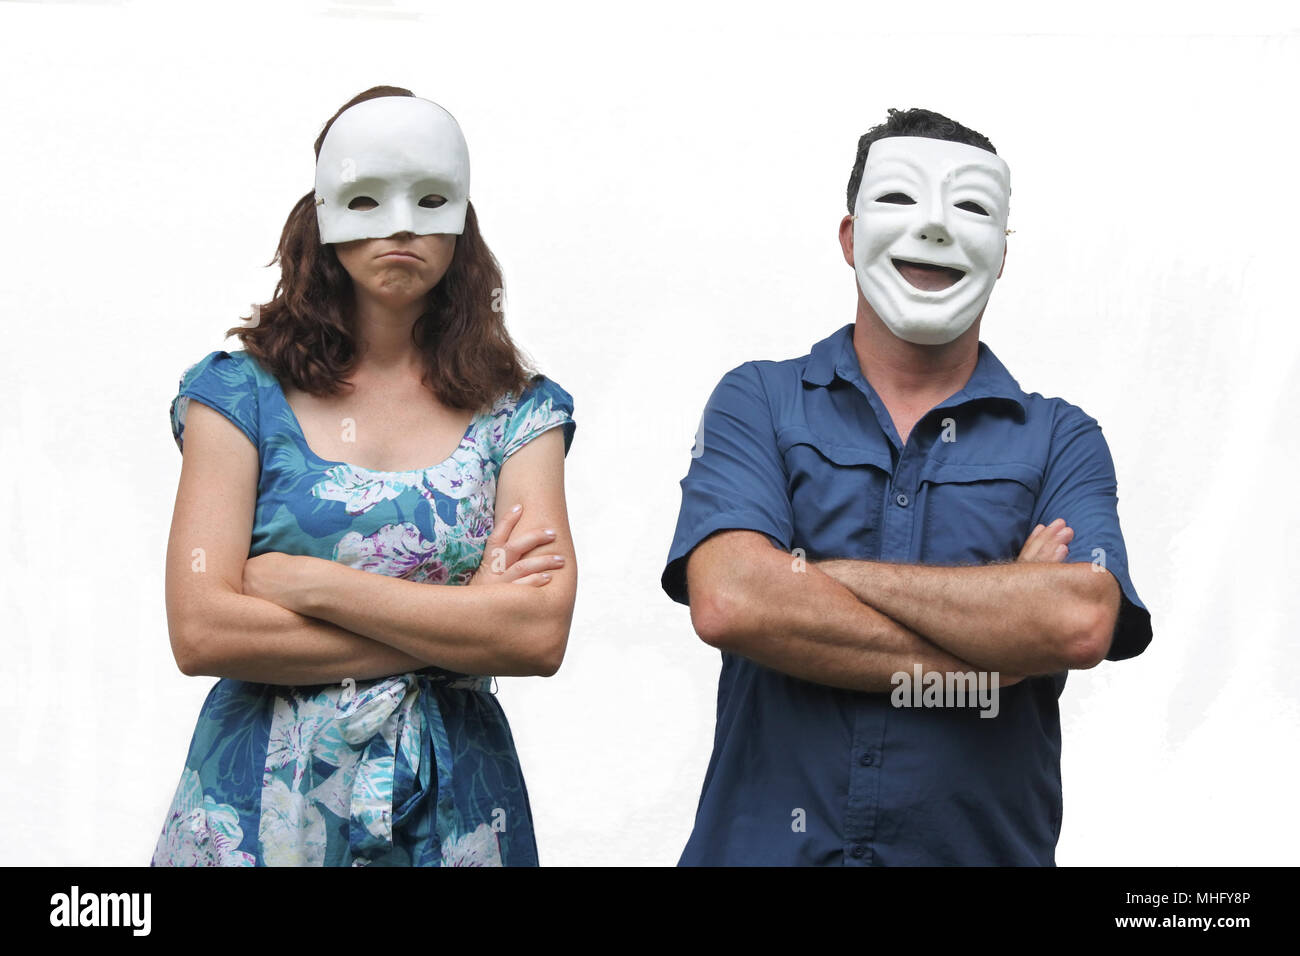 Confident man wearing a happy face mask standing beside a unconfident woman who wearing a sad face mask. Real people. Copy space - Stock Image